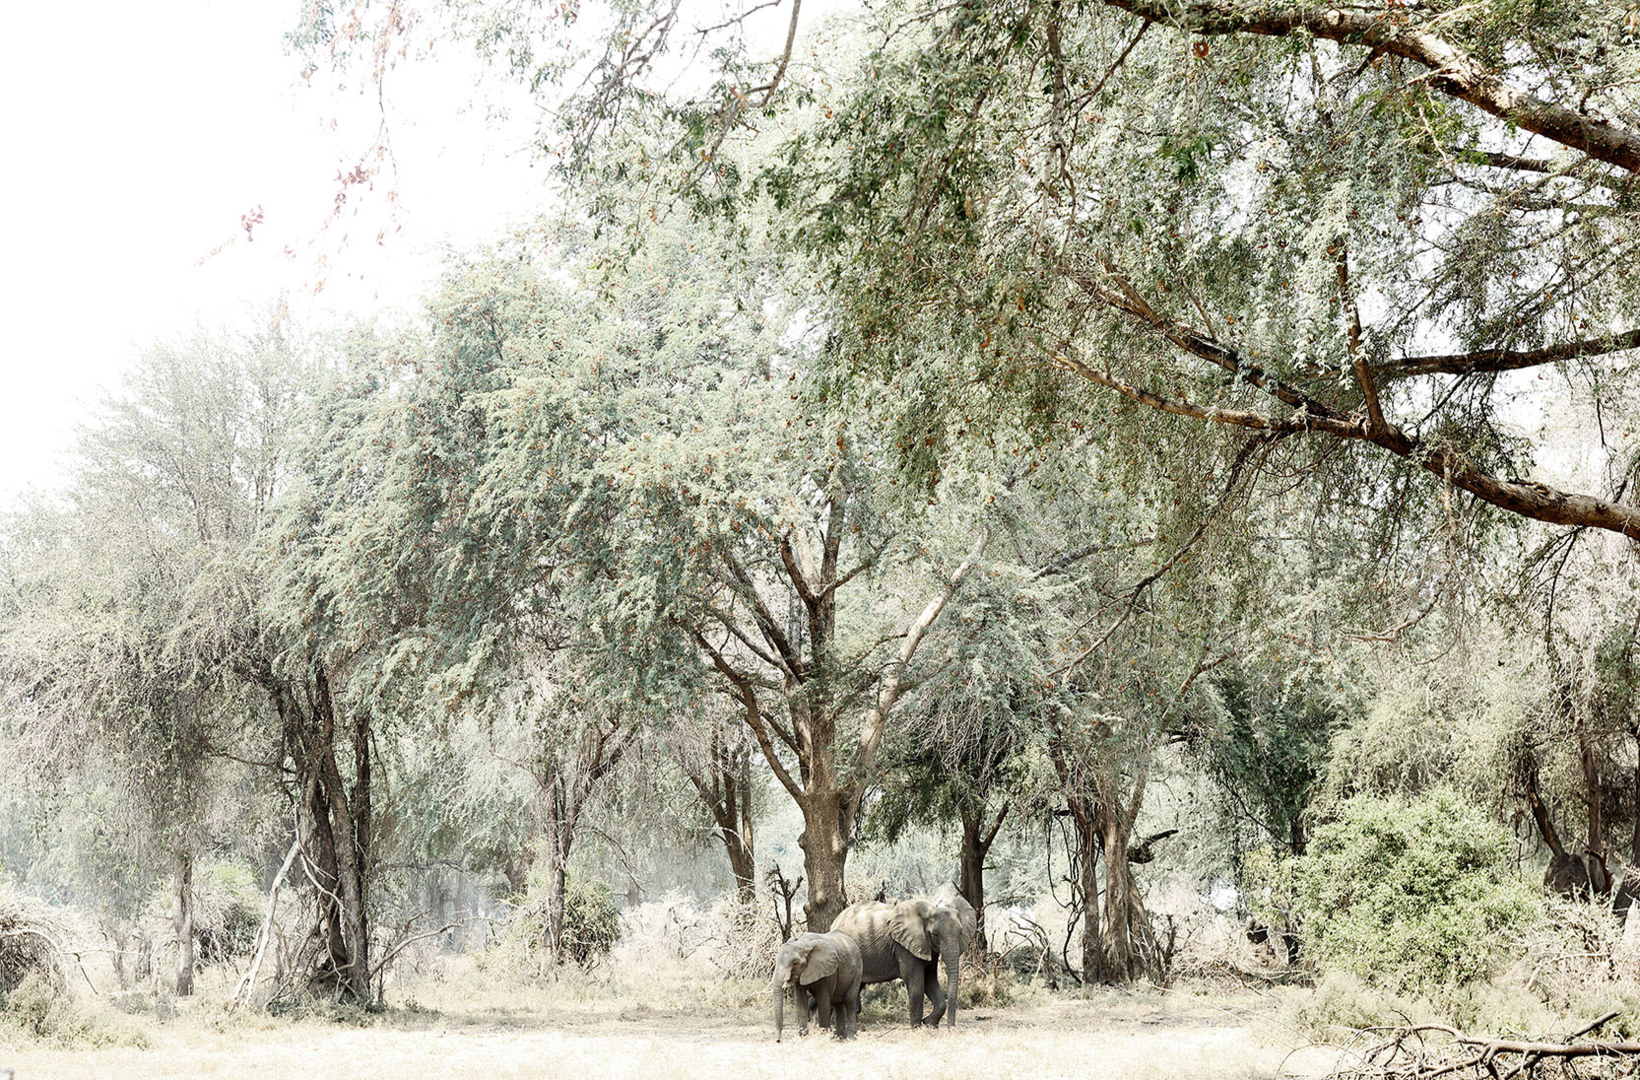 African elephants walk through riverine forest at Mana Pools National Park in Zimbabwe towards the river